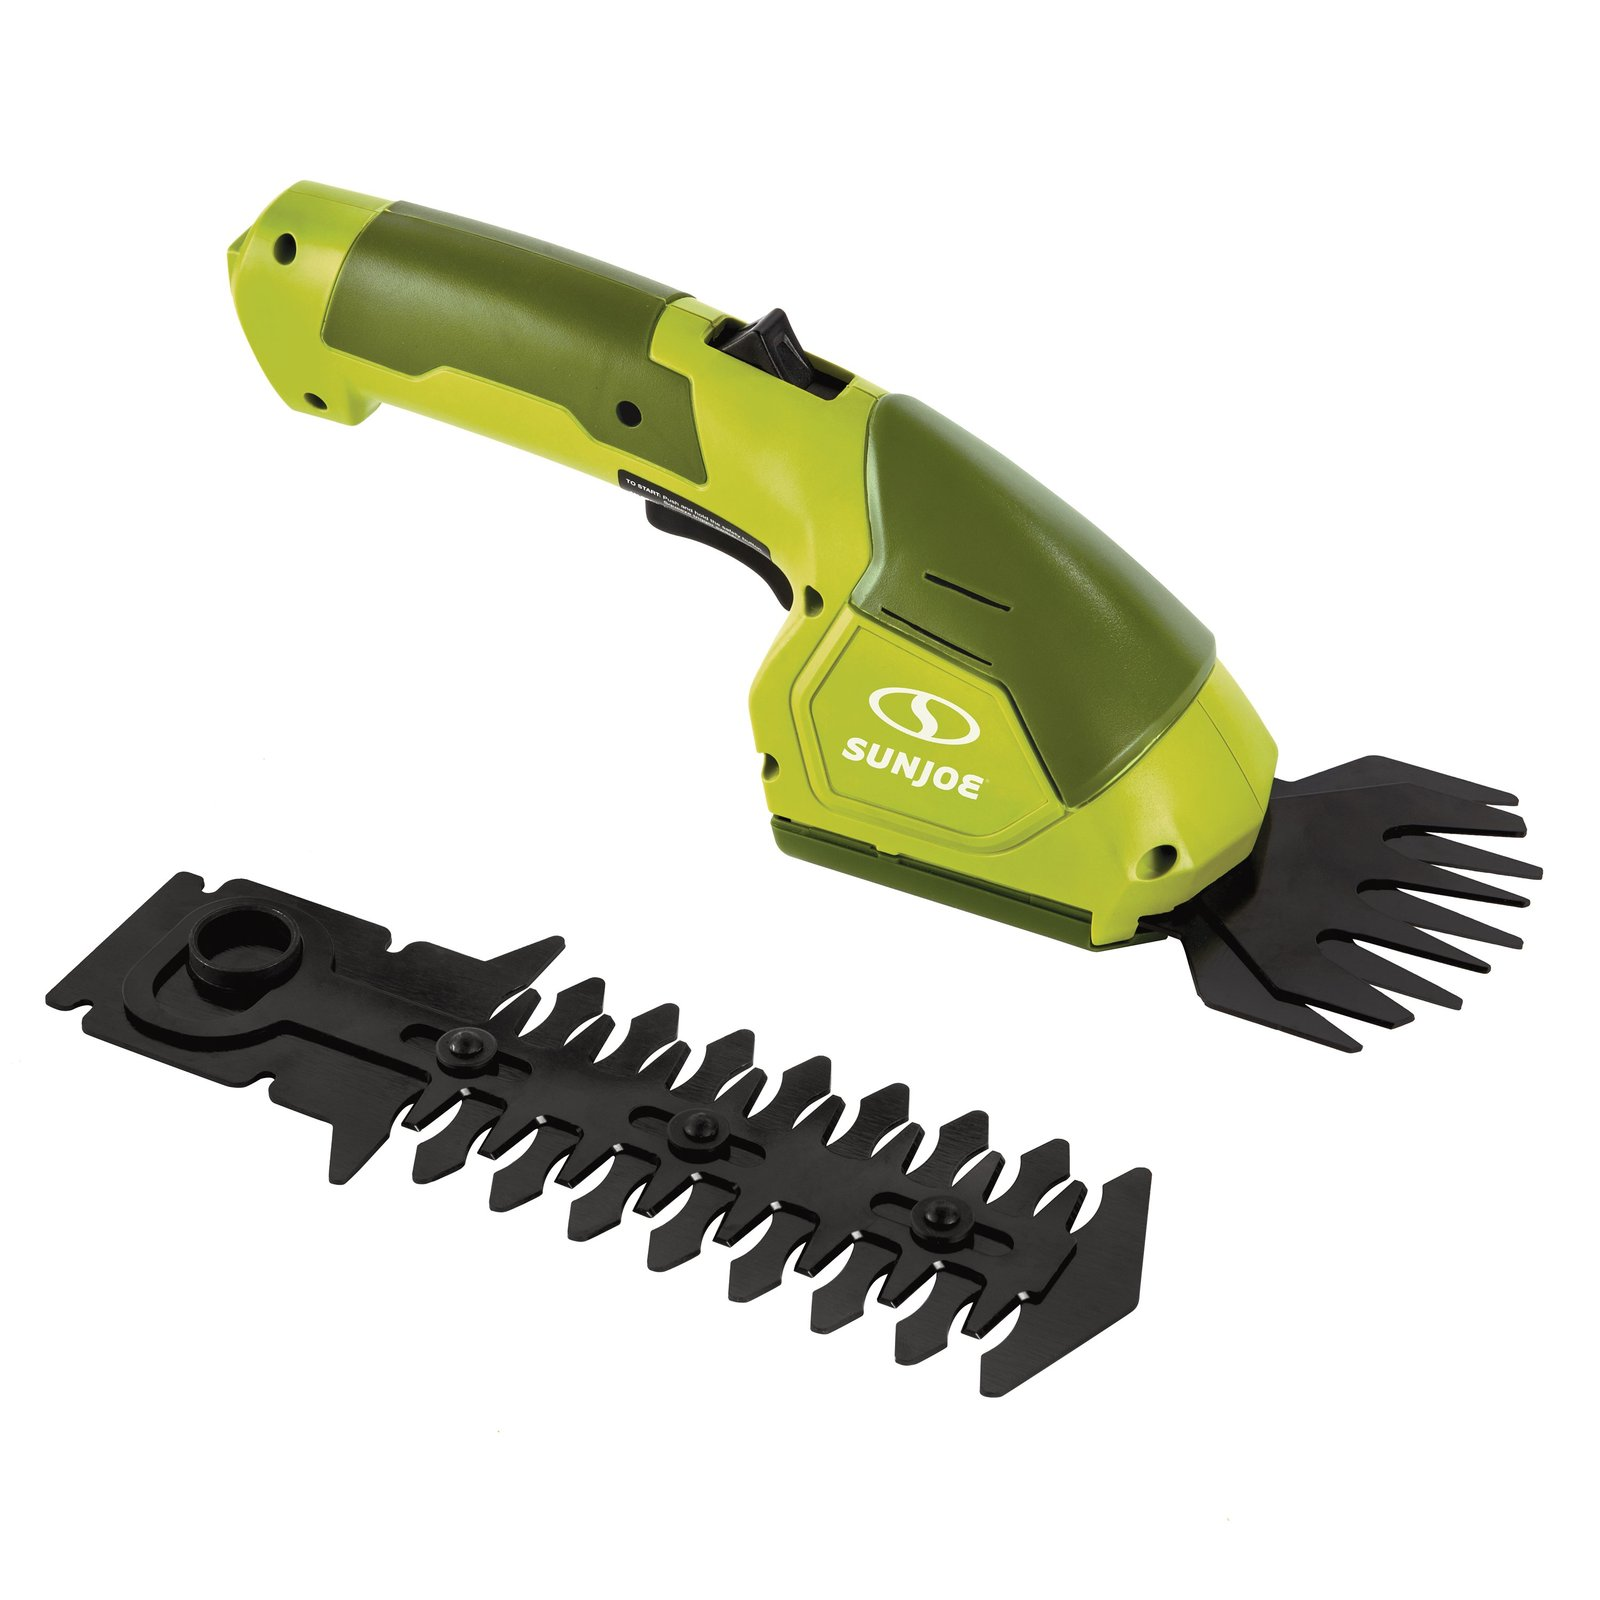 Sun Joe 7.2-Volt Lithium-Ion Cordless Grass Shear/Hedge Trimmer